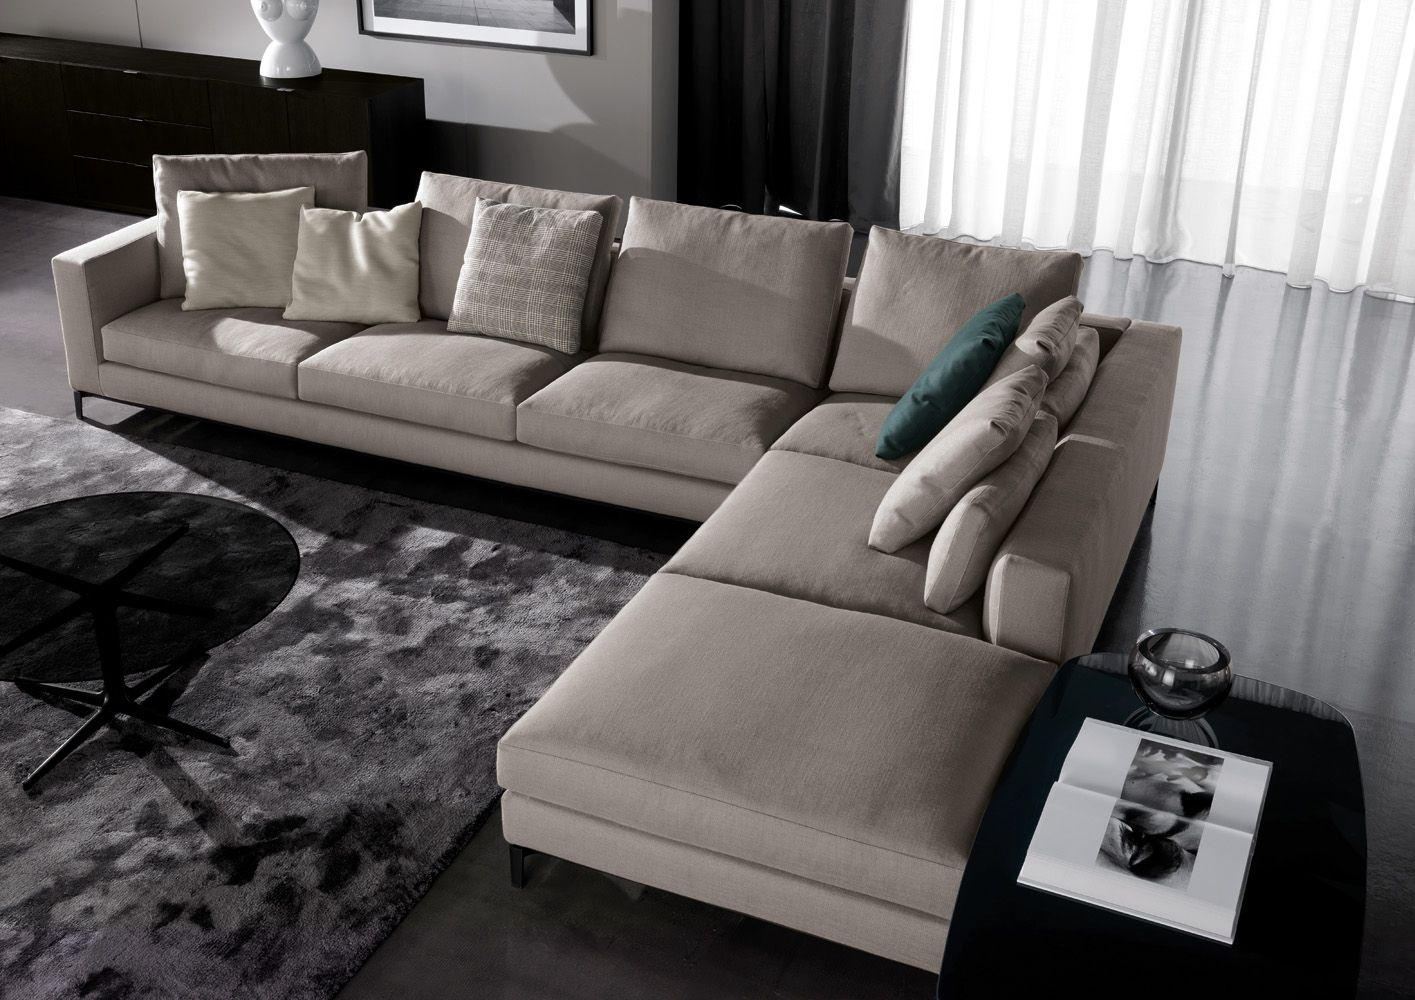 Great Lshape sofa setup from the Andersen collection of